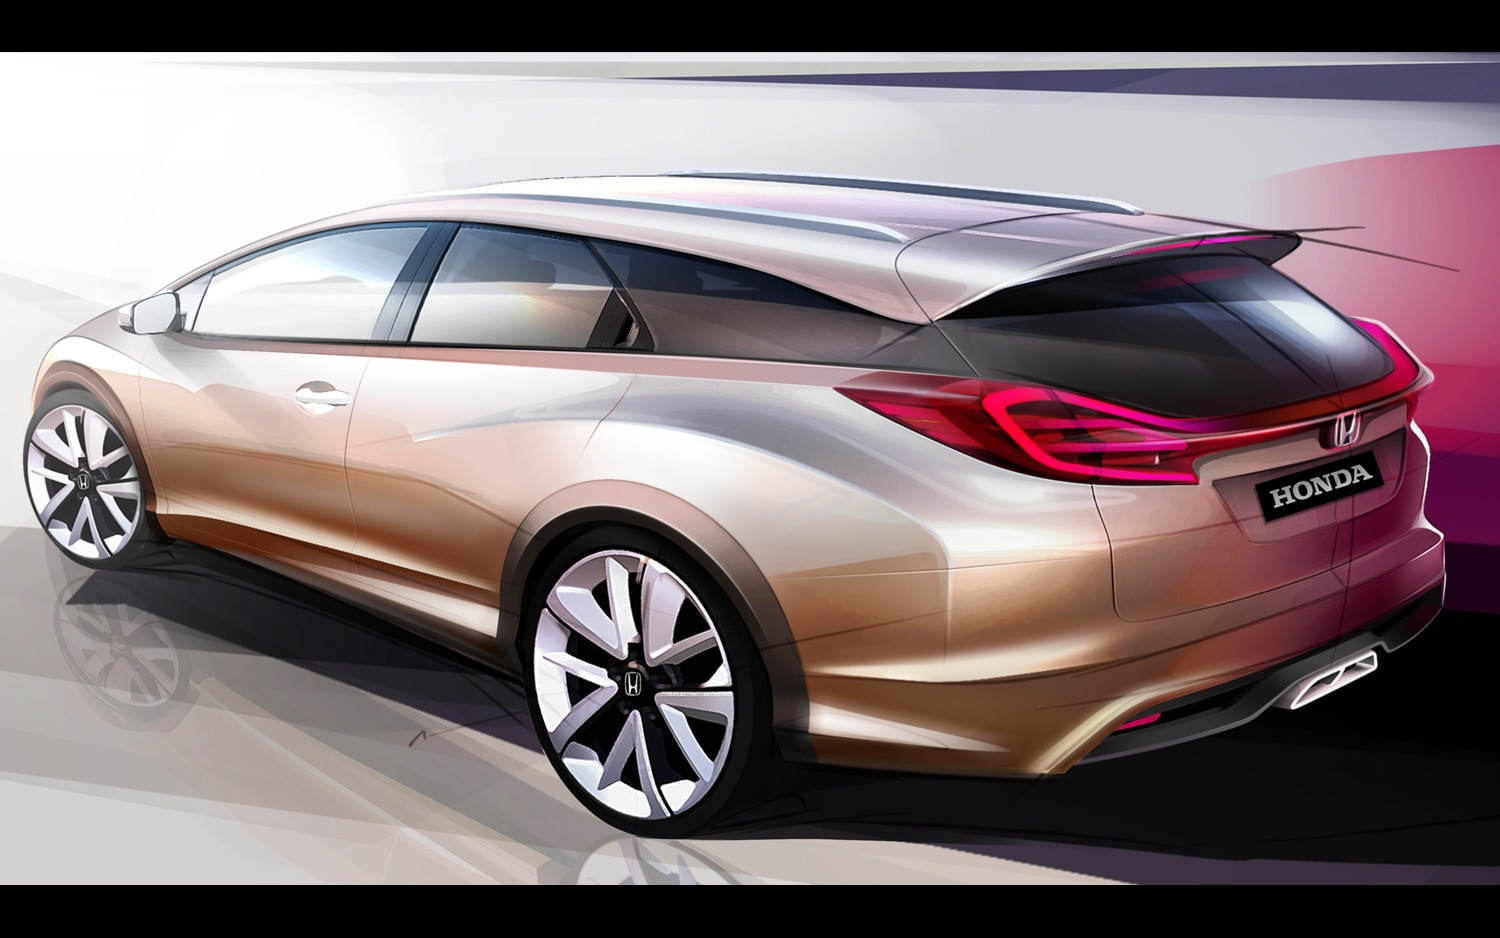 2013 Honda Civic Wagon Concept Rendering Rear Three Quarter1